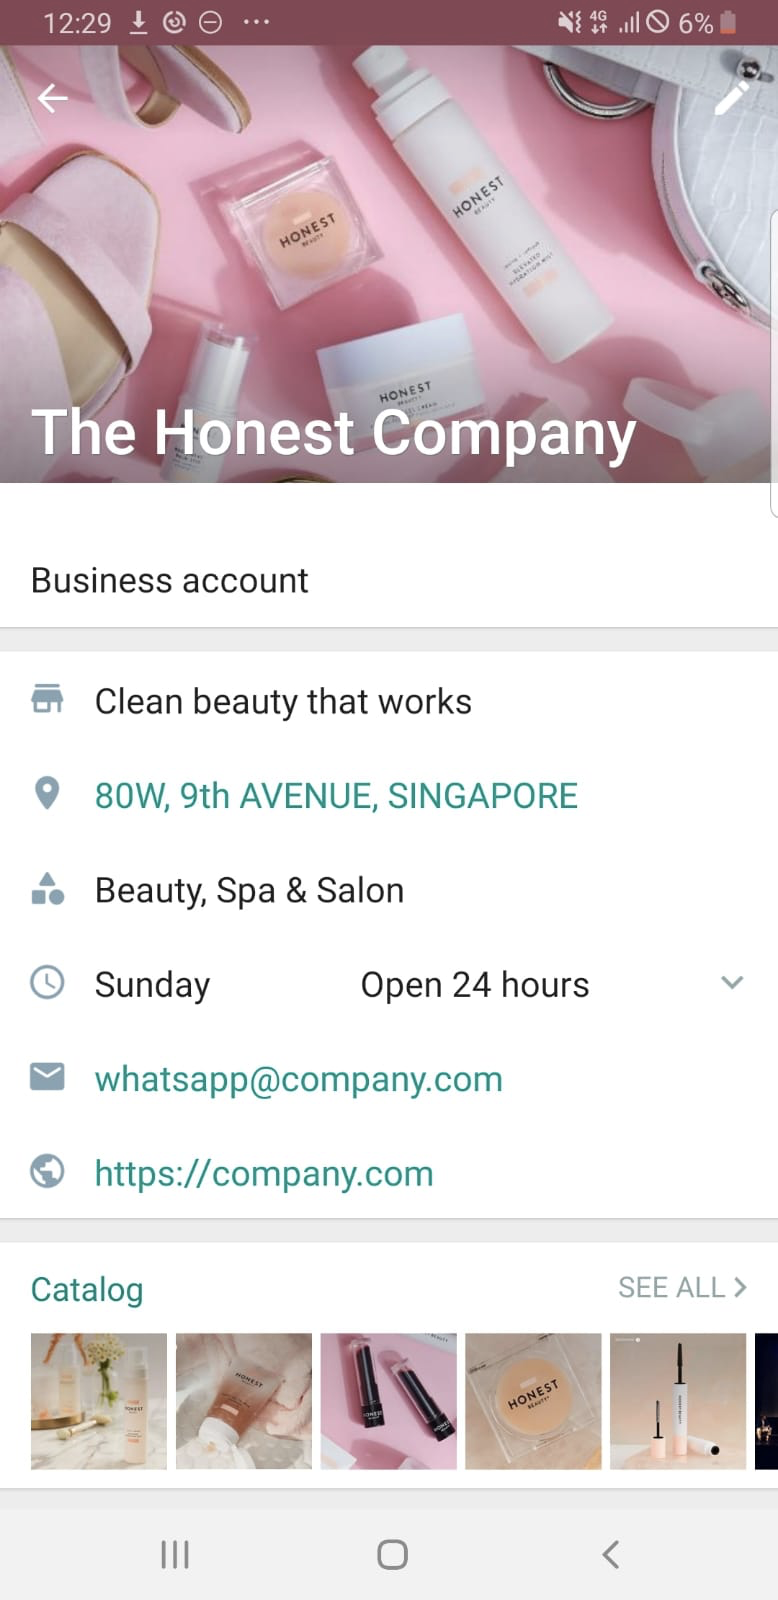 Whatsapp business app business details, opening hours